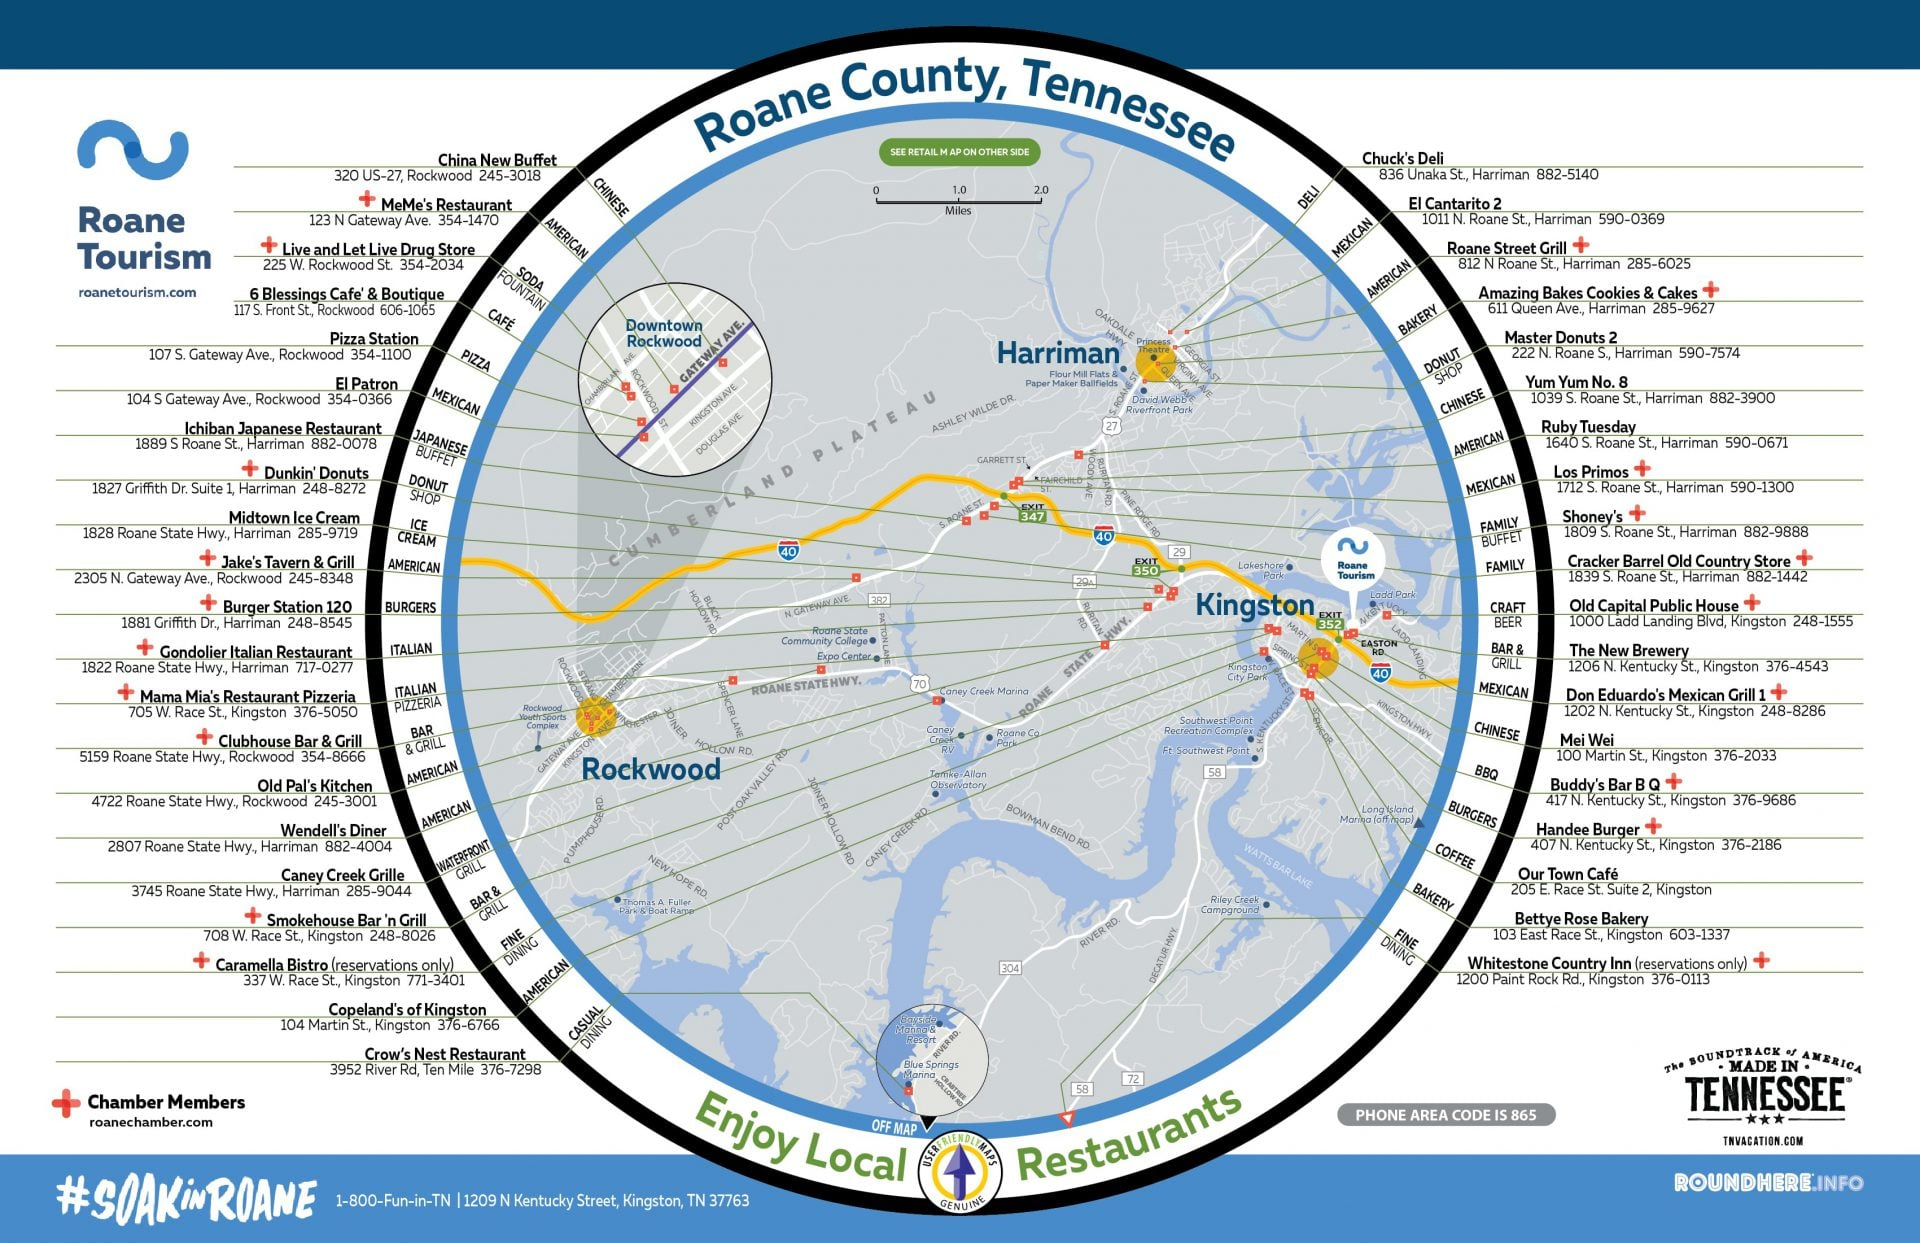 Roane County RoundHere